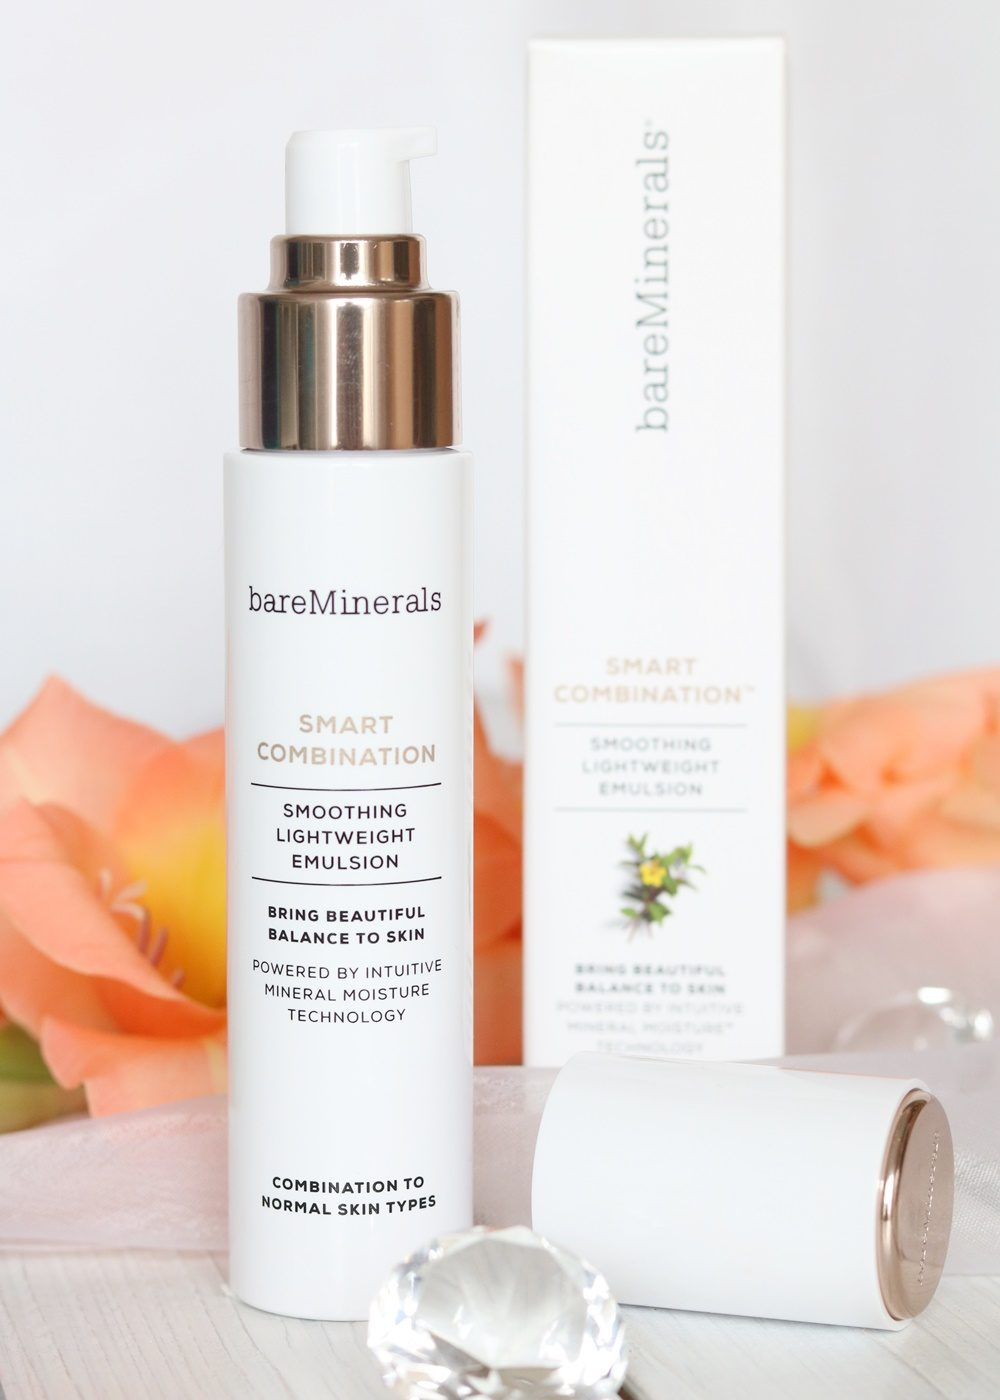 bareminerals-gesichtspflege-hautpflege-smart-combination-emulsion-1-1